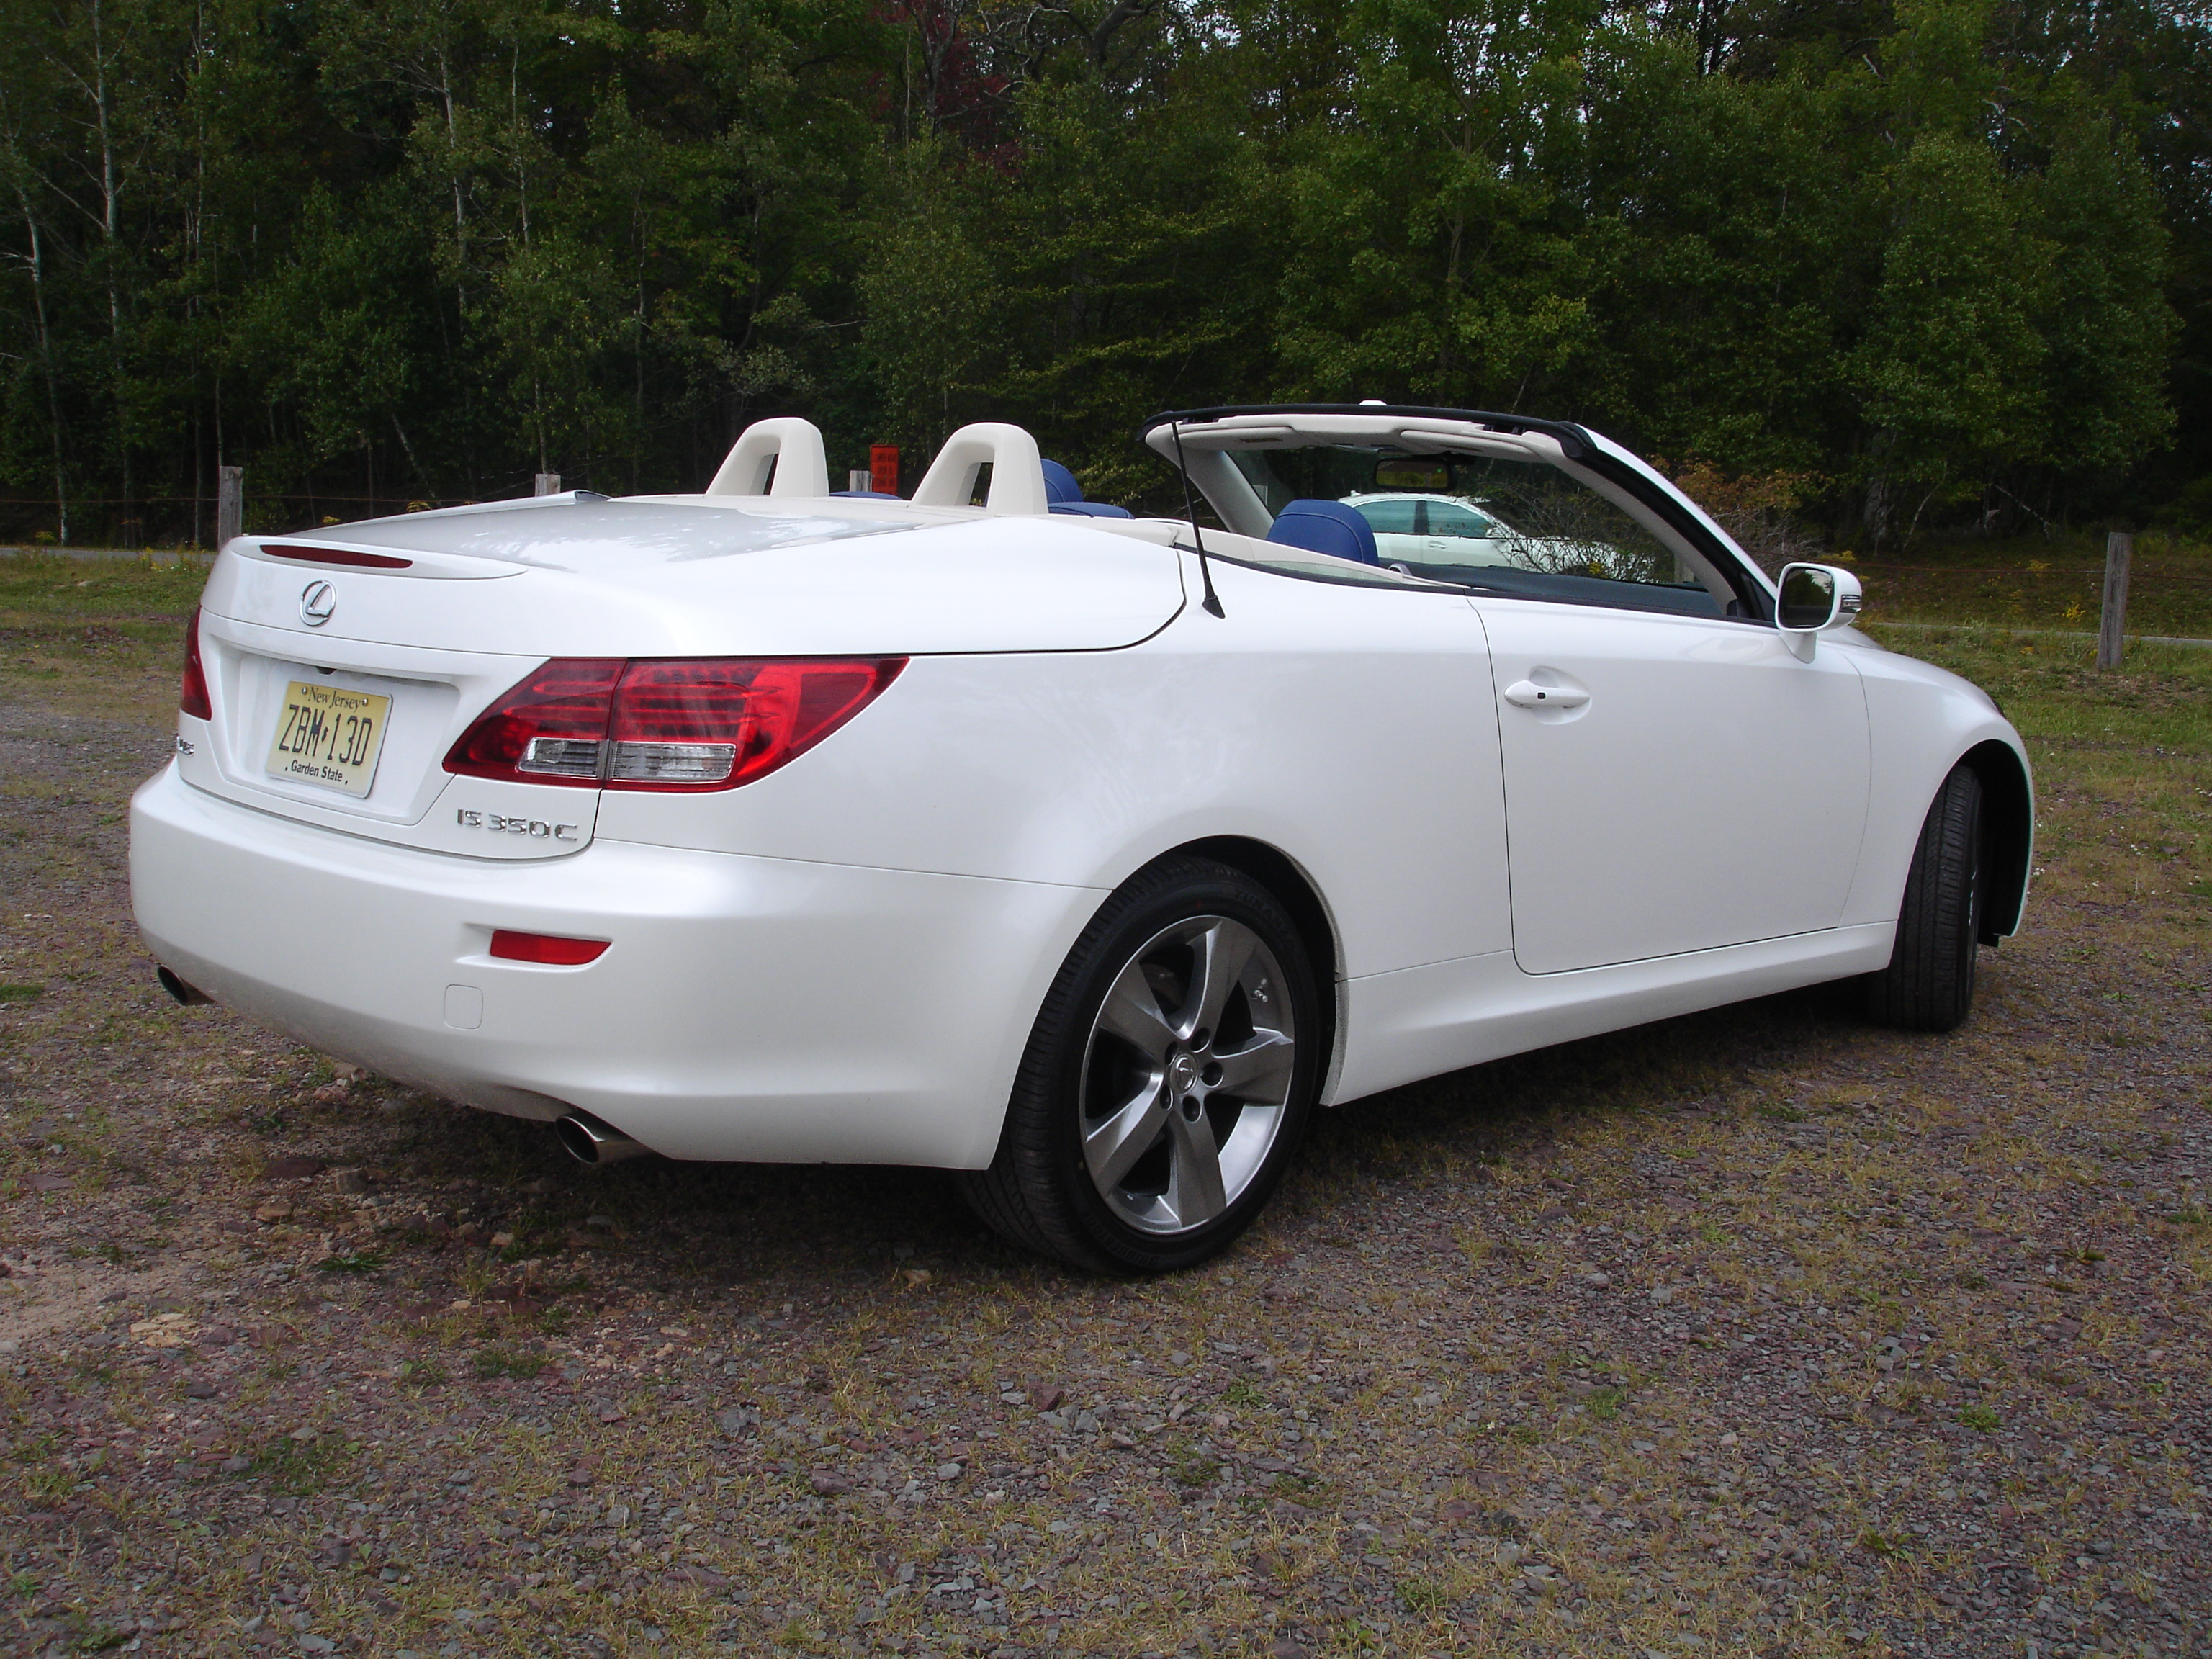 DSC06077 - 2010 Lexus Is 350 C Convertible